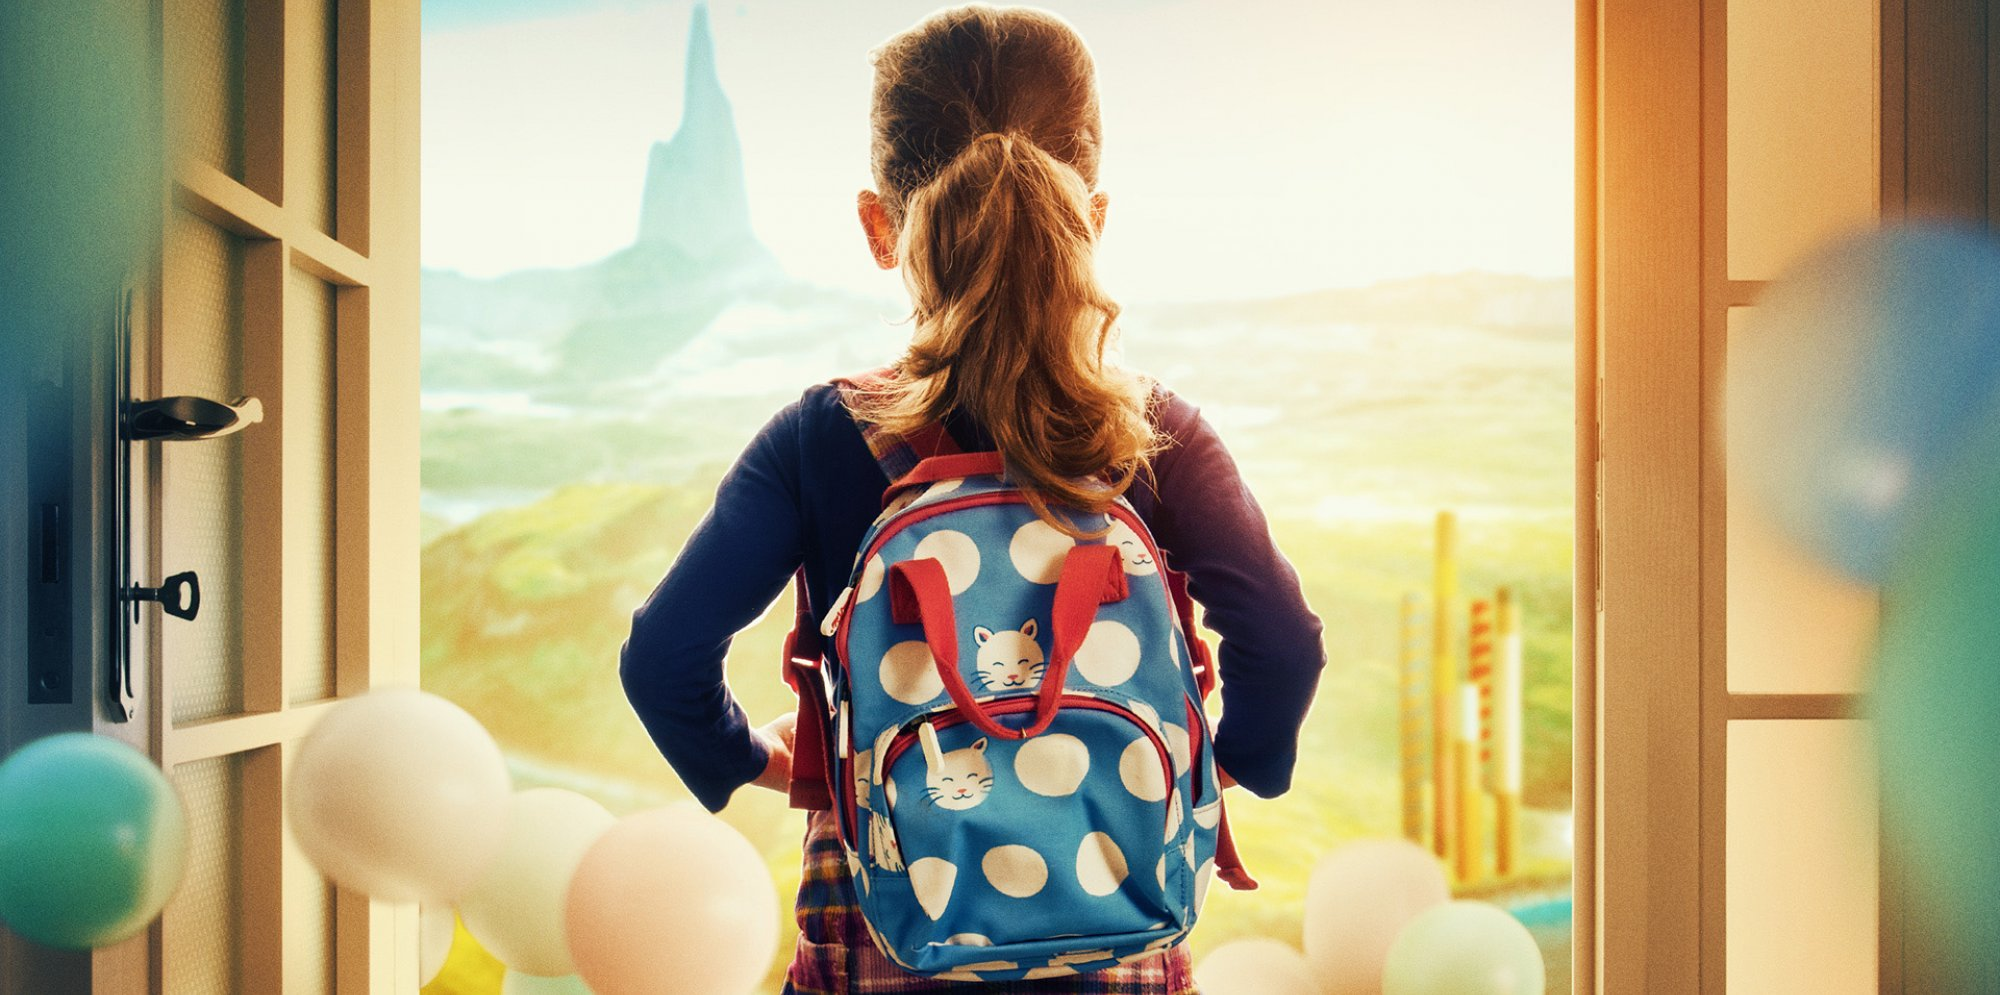 A child wearing a backpack looks out of an open door to a vast landscape